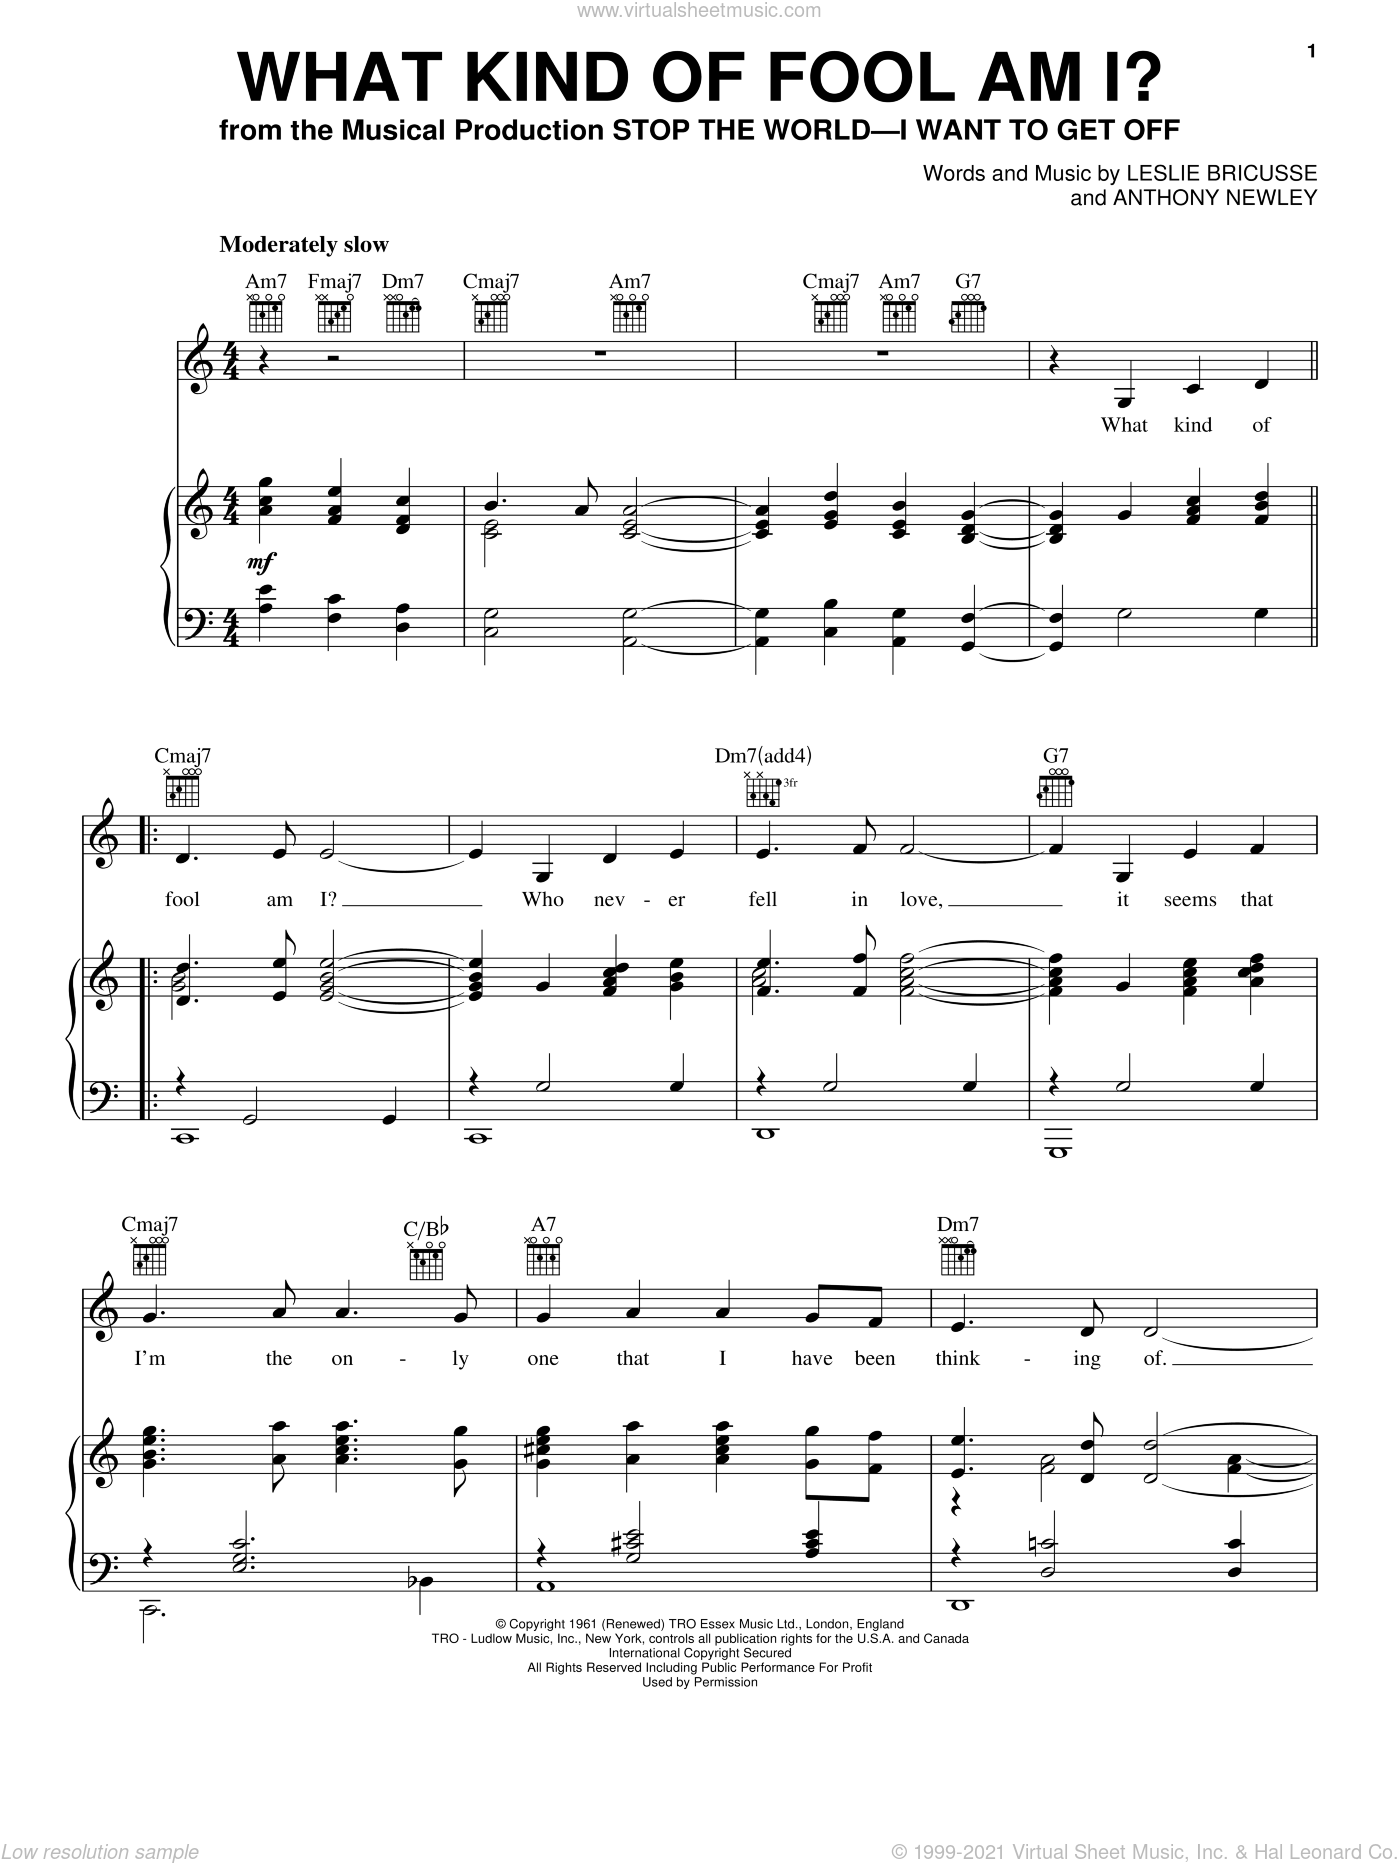 What Kind Of Fool Am I? sheet music for voice, piano or guitar by Leslie Bricusse, Bill Evans, Robert Goulet, Sammy Davis, Jr., Sarah Vaughan and Anthony Newley, intermediate skill level